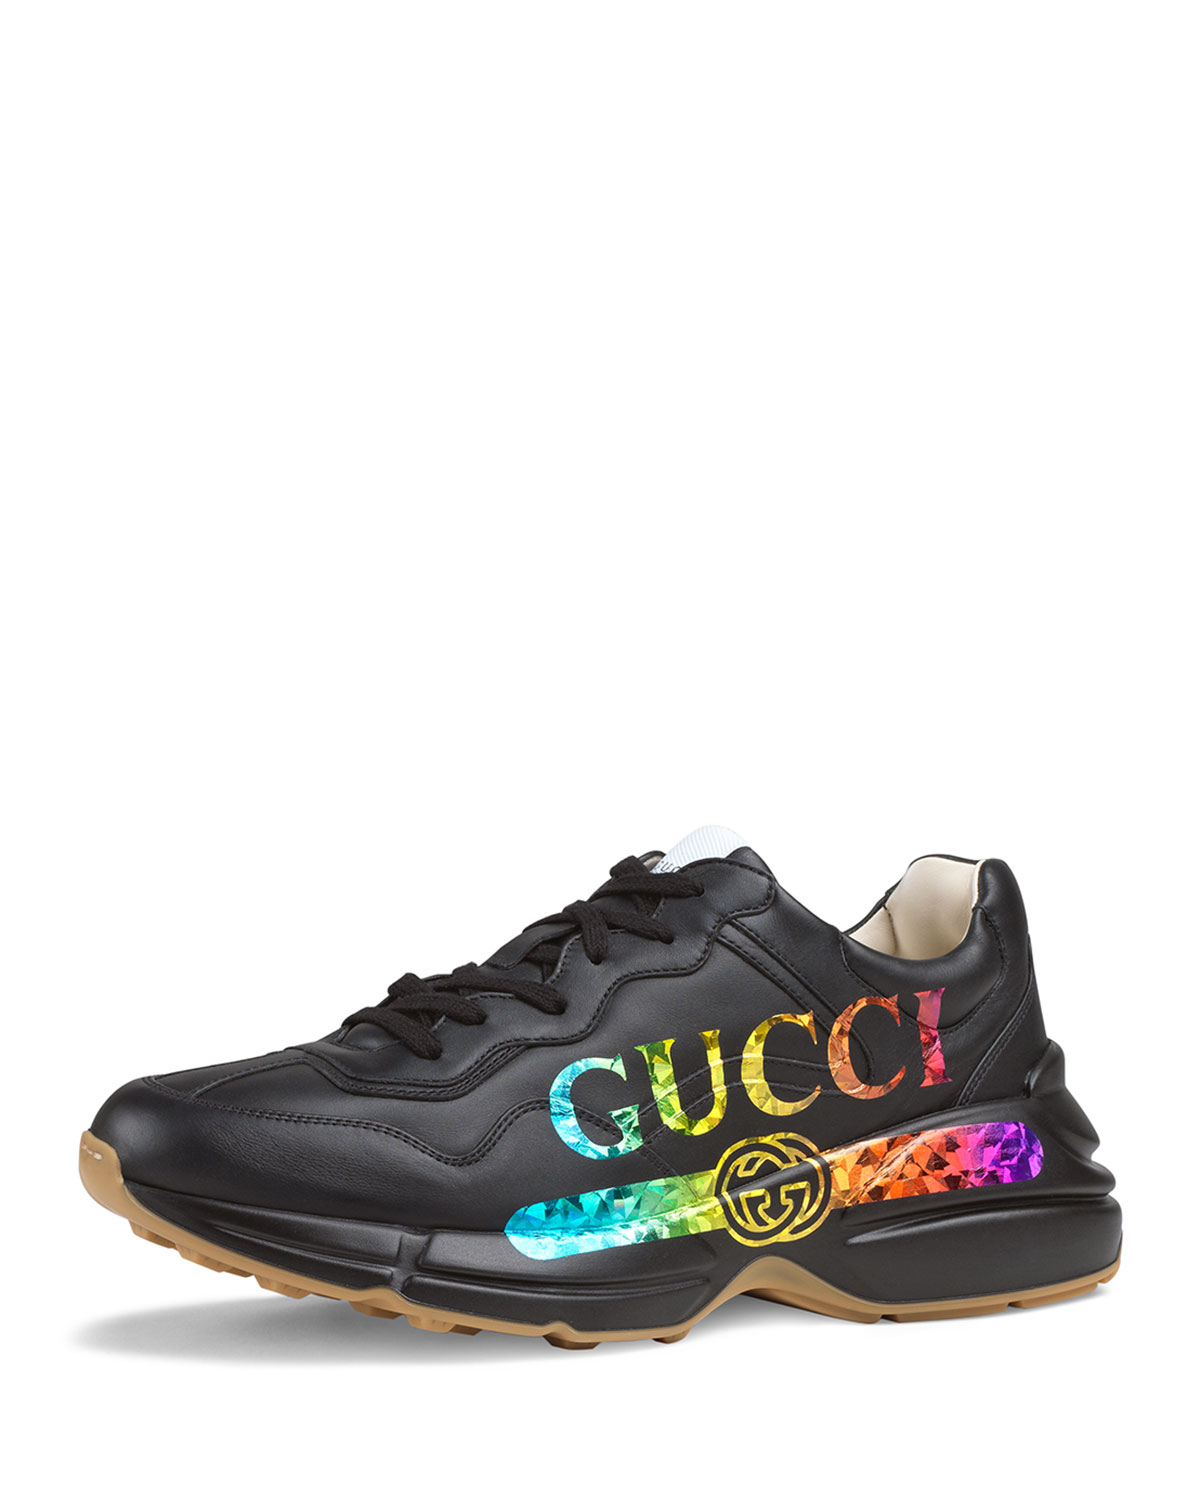 4b9eedba3 Gucci Men s Rhyton Logo-Print Leather Sneaker